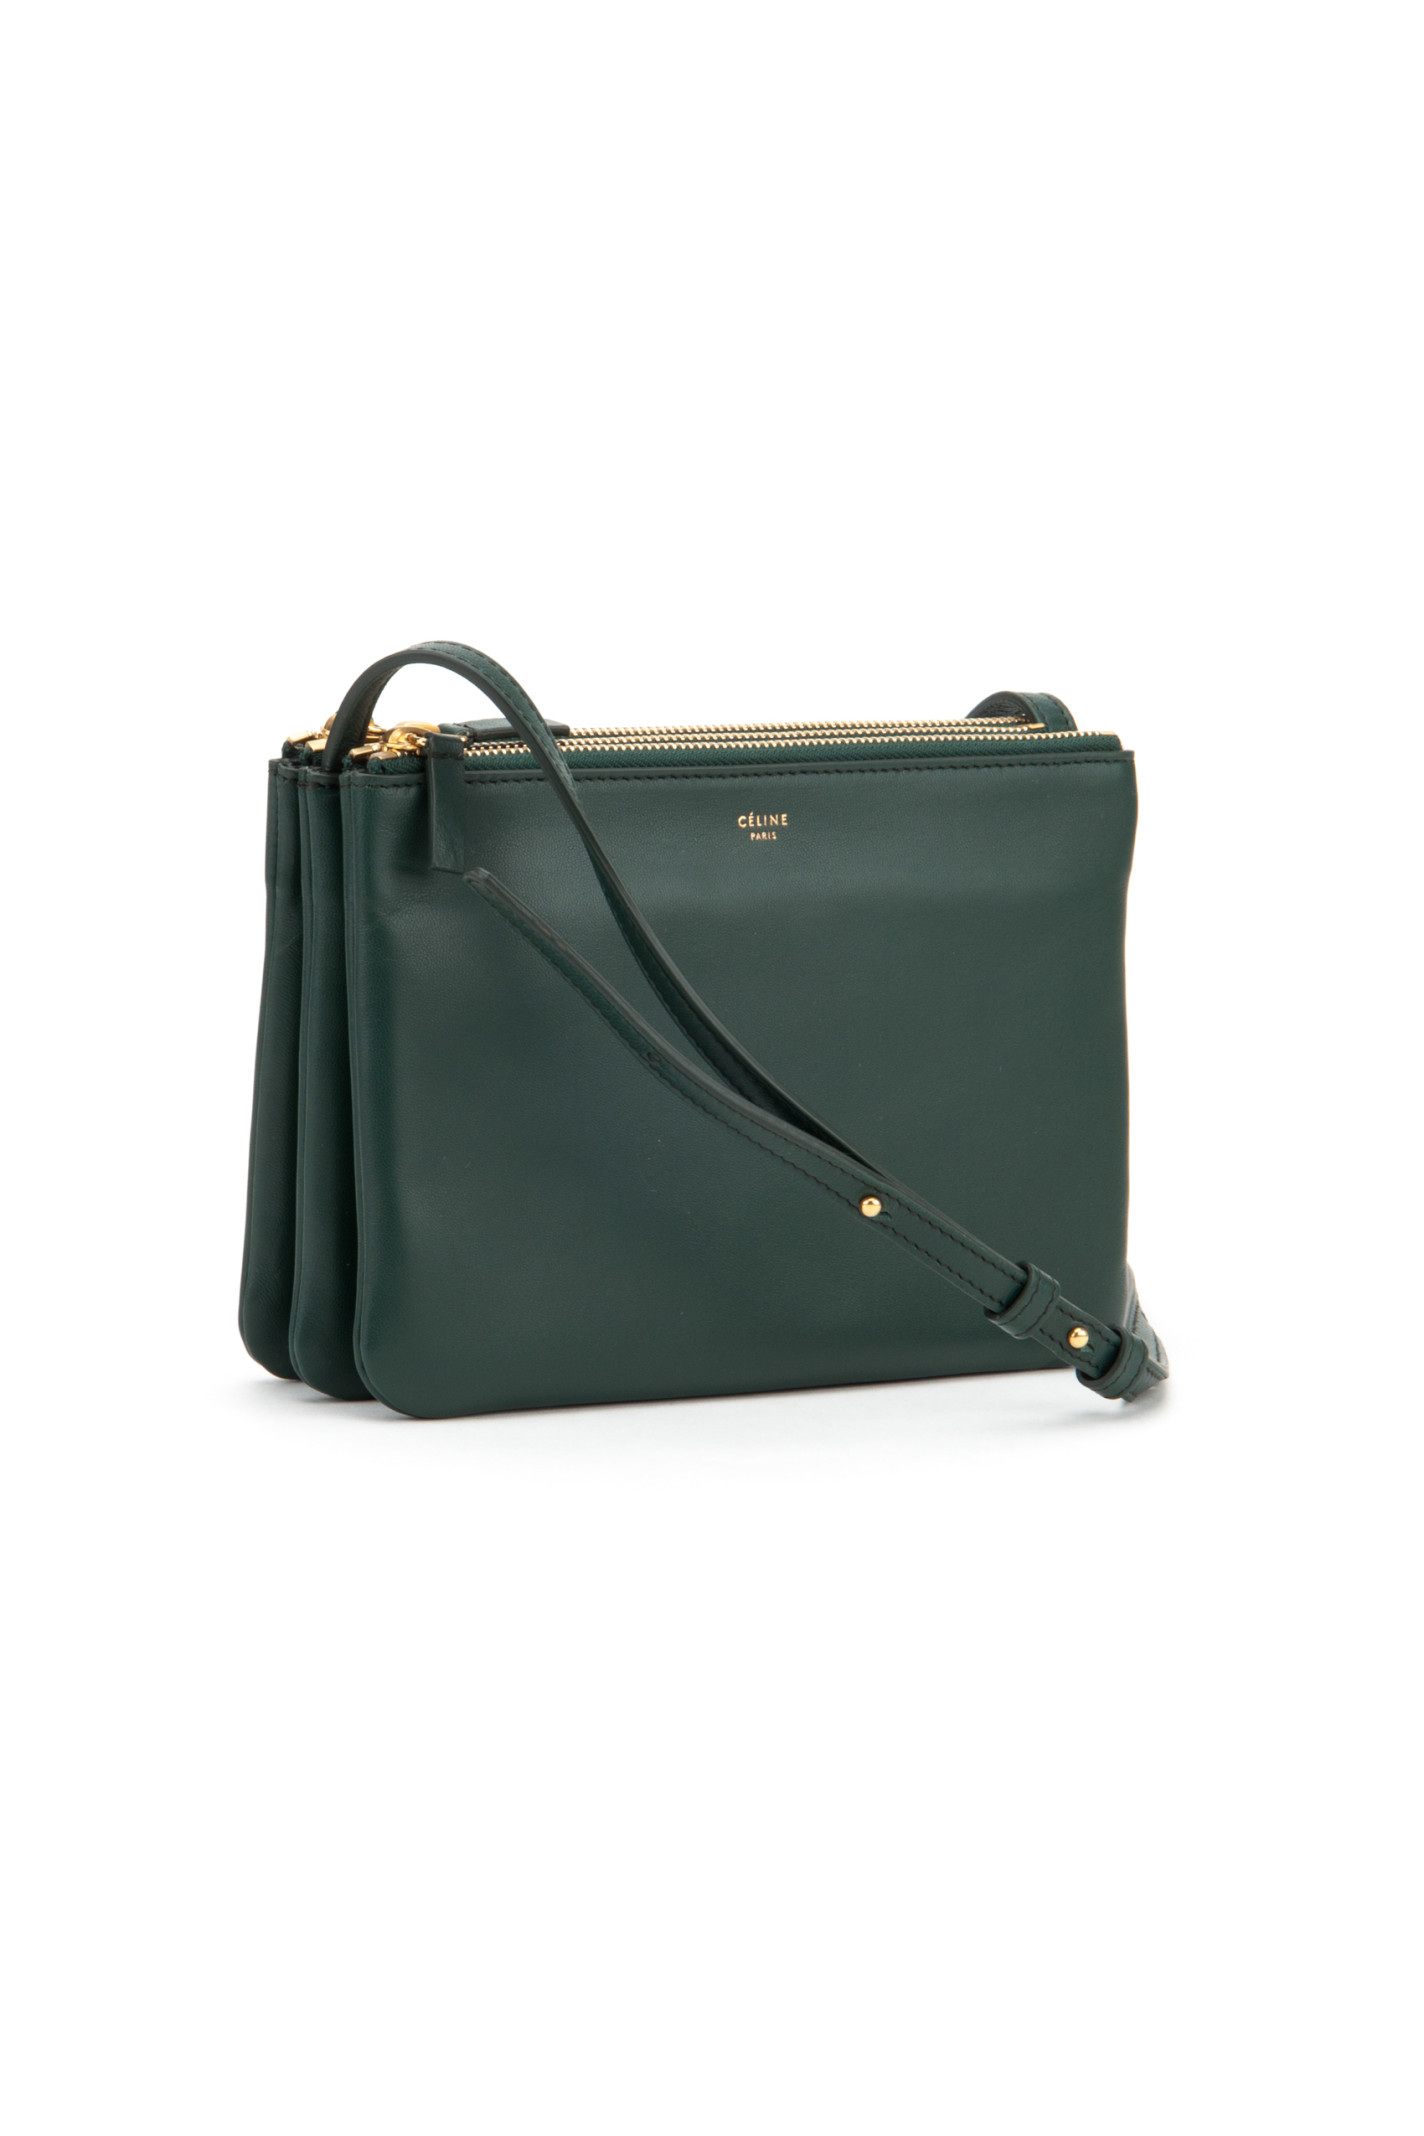 celine purse buy online - celine handbag trio